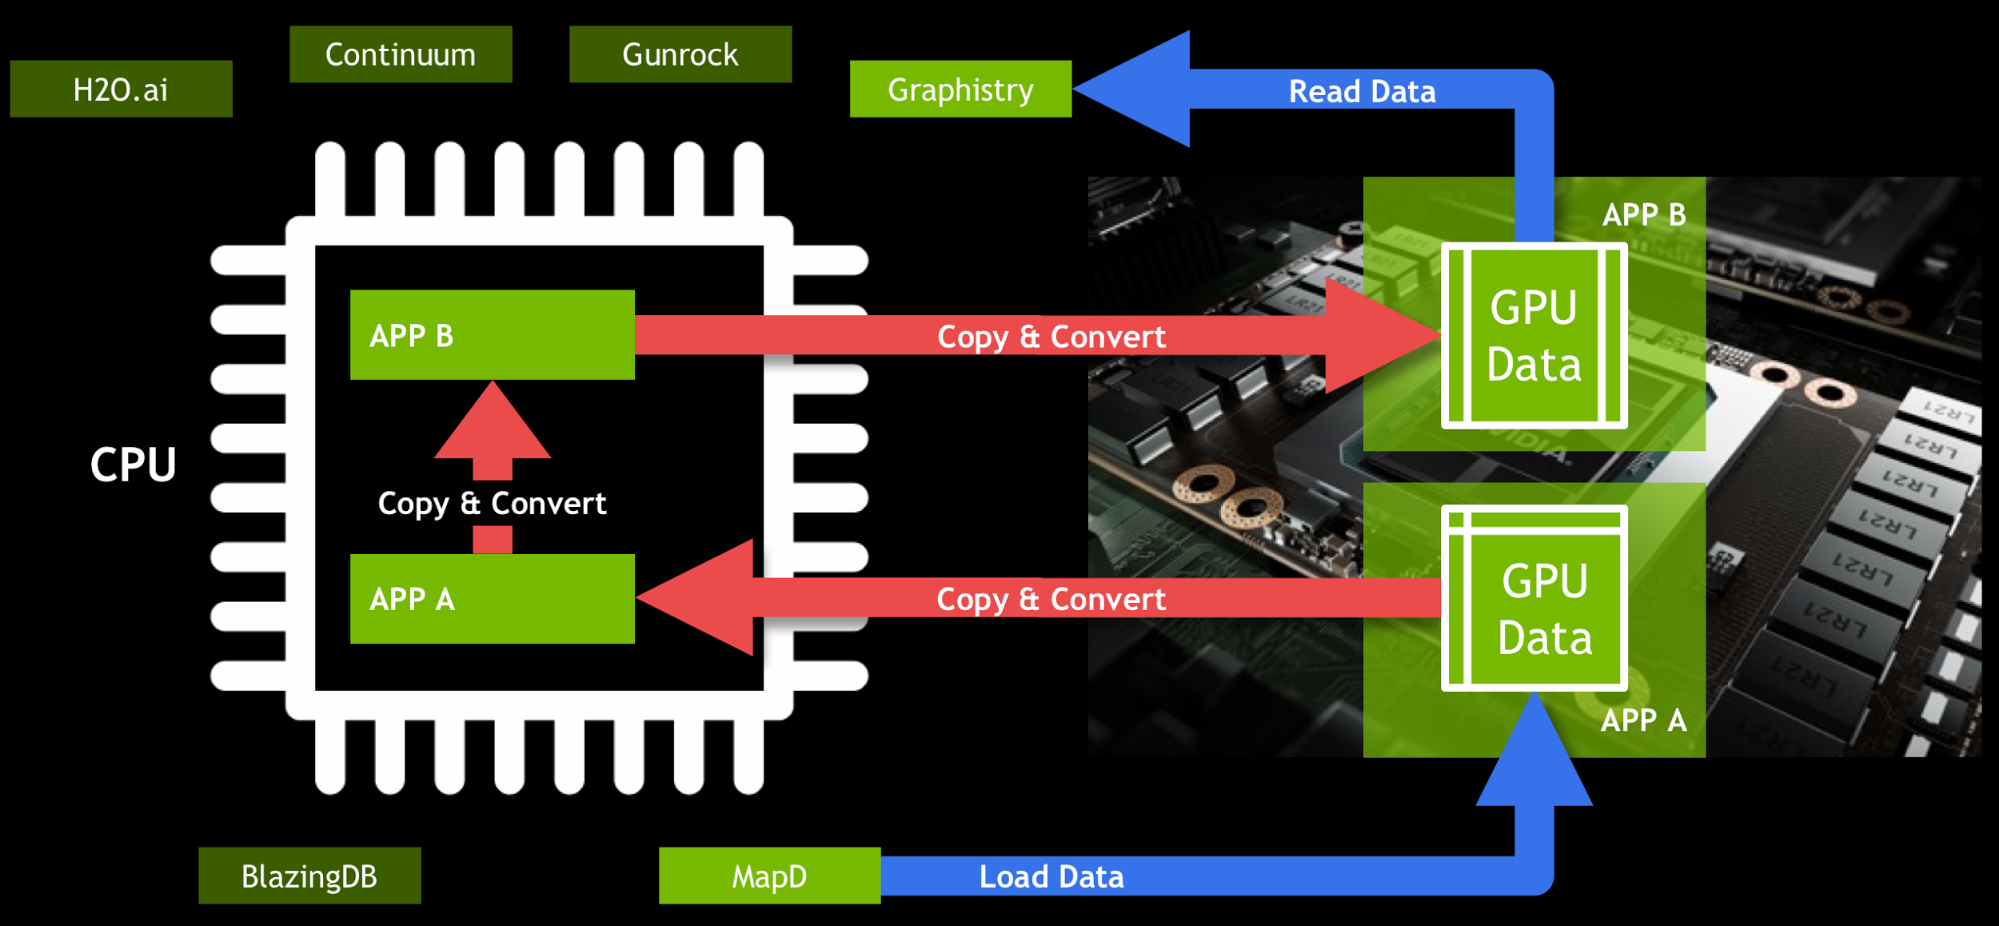 Figure 1: Without shared GPU data structures provided by GOAI, GPU-accelerated analytics workflows suffer excessive data movement and conversion costs.